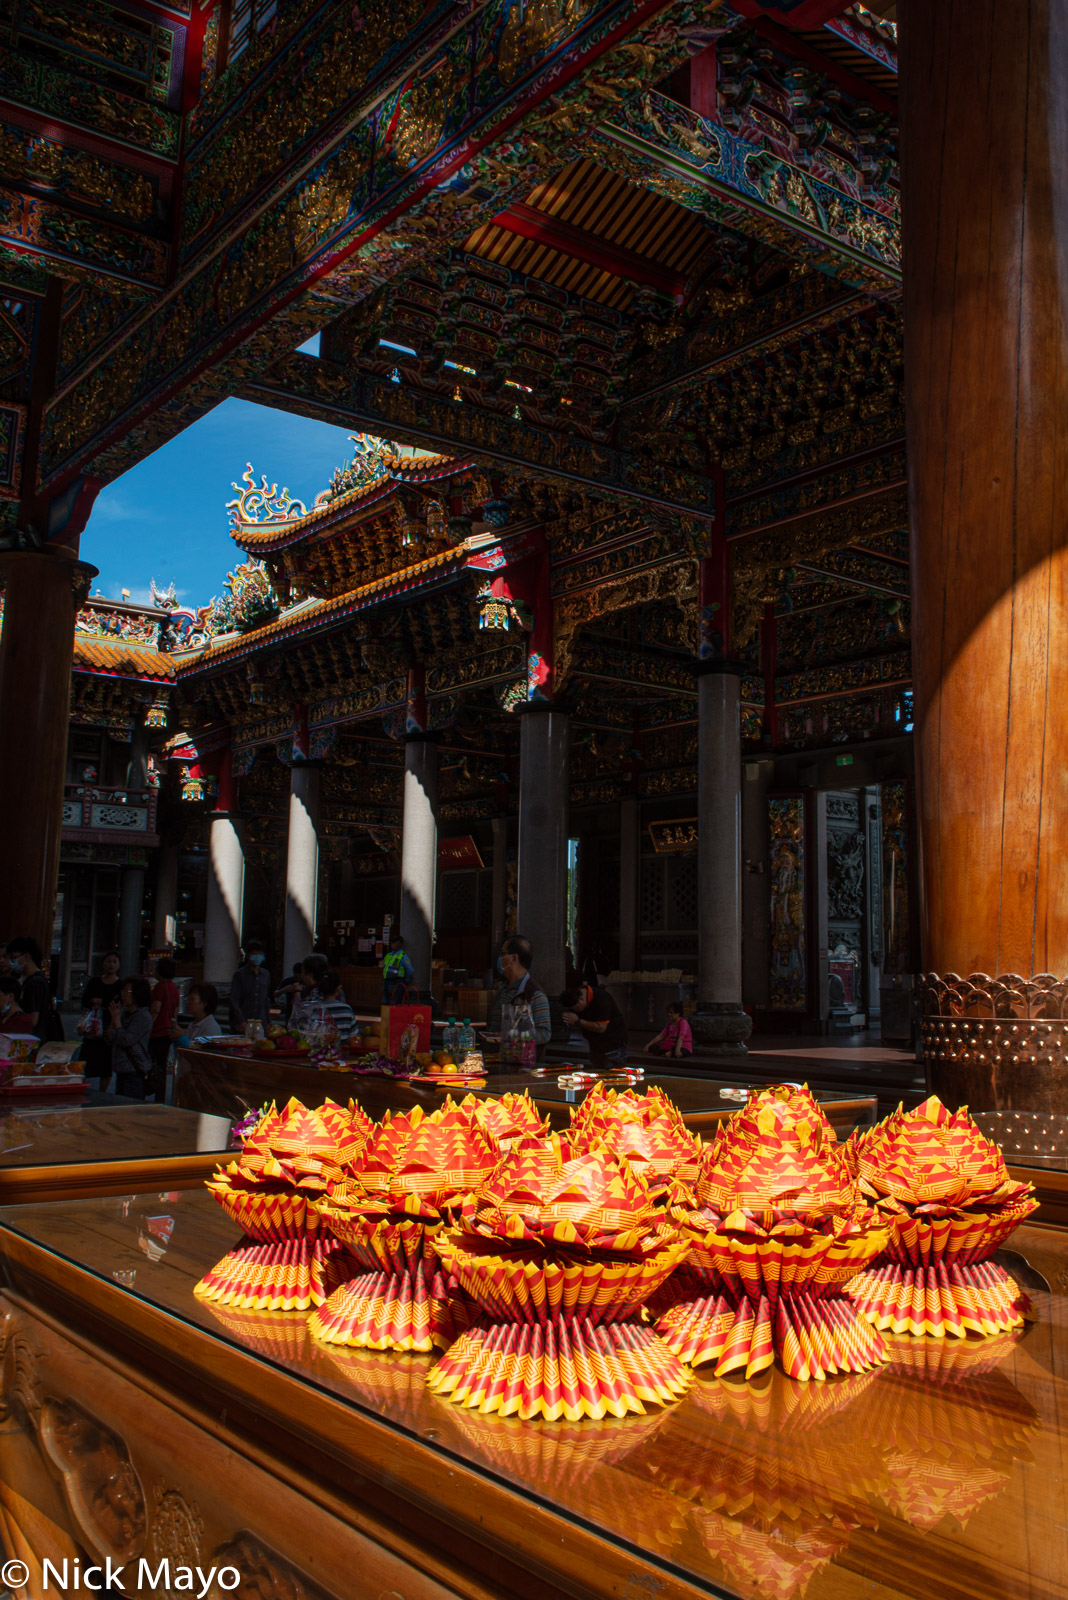 Paper offerings set out at the Zhulinshan Guanyin temple at Linkou.